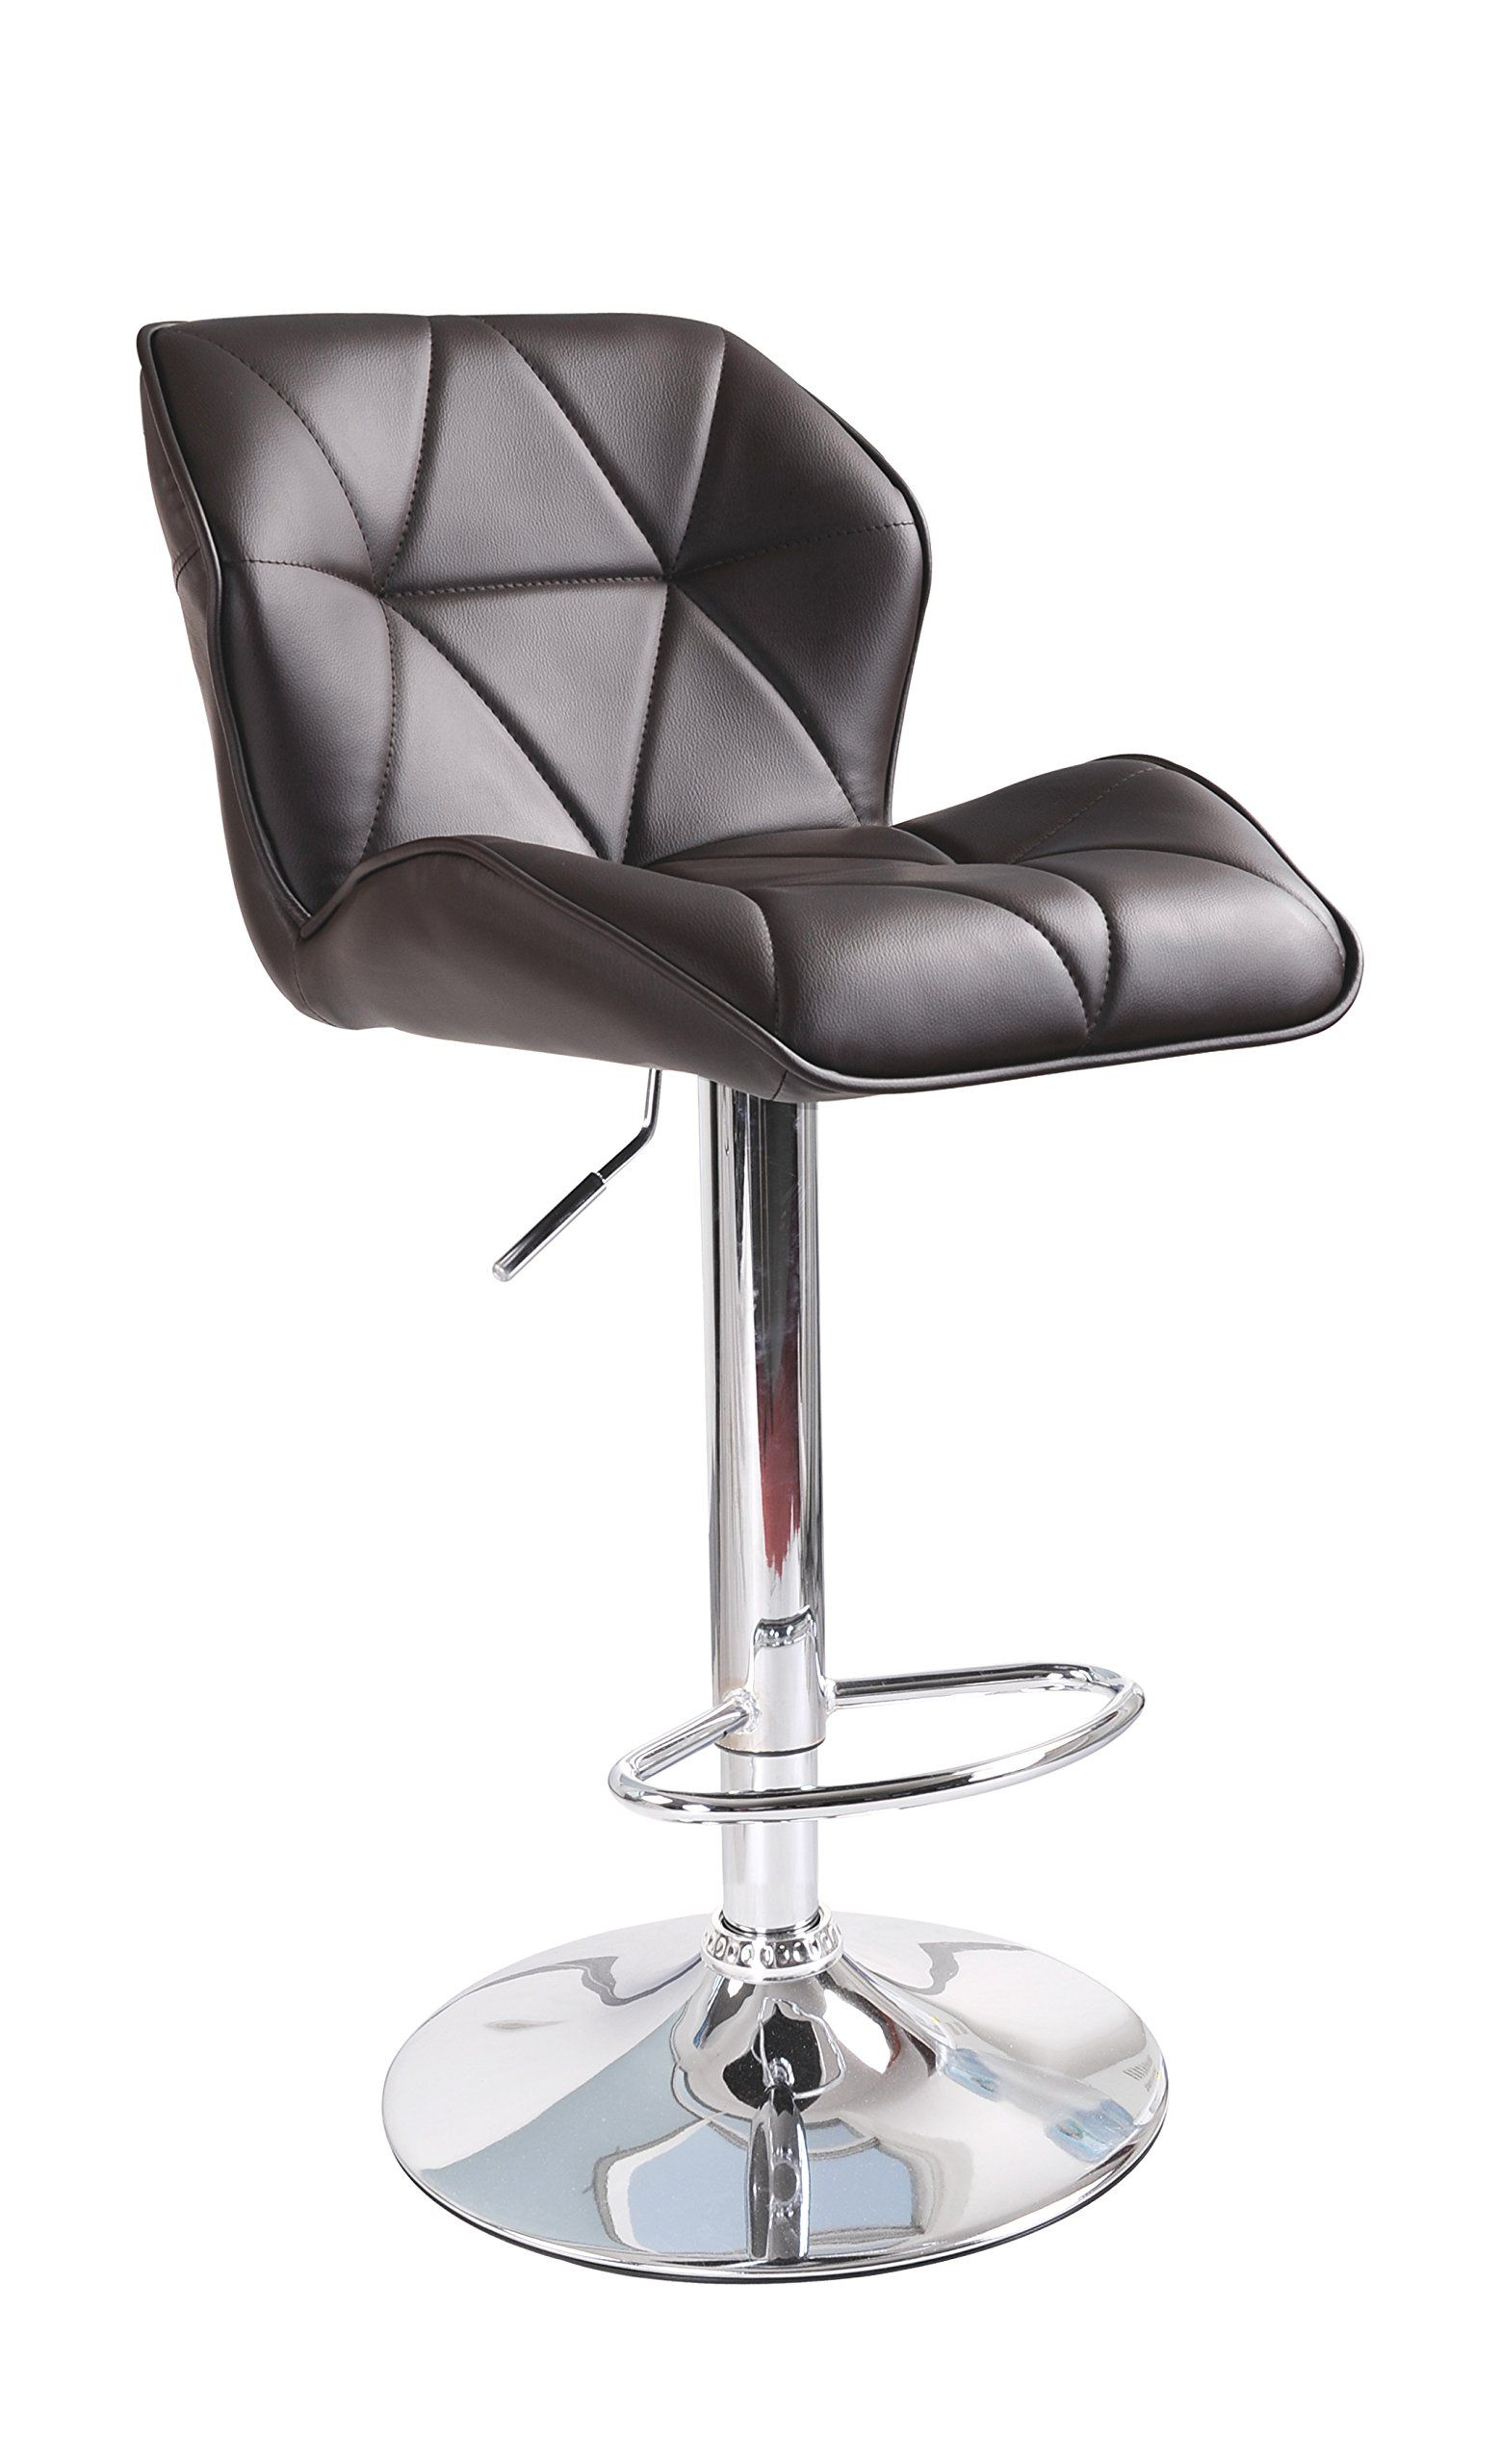 Enjoyable Shortlist Modern Uranus Padded Swivel Leather Breakfast Pdpeps Interior Chair Design Pdpepsorg